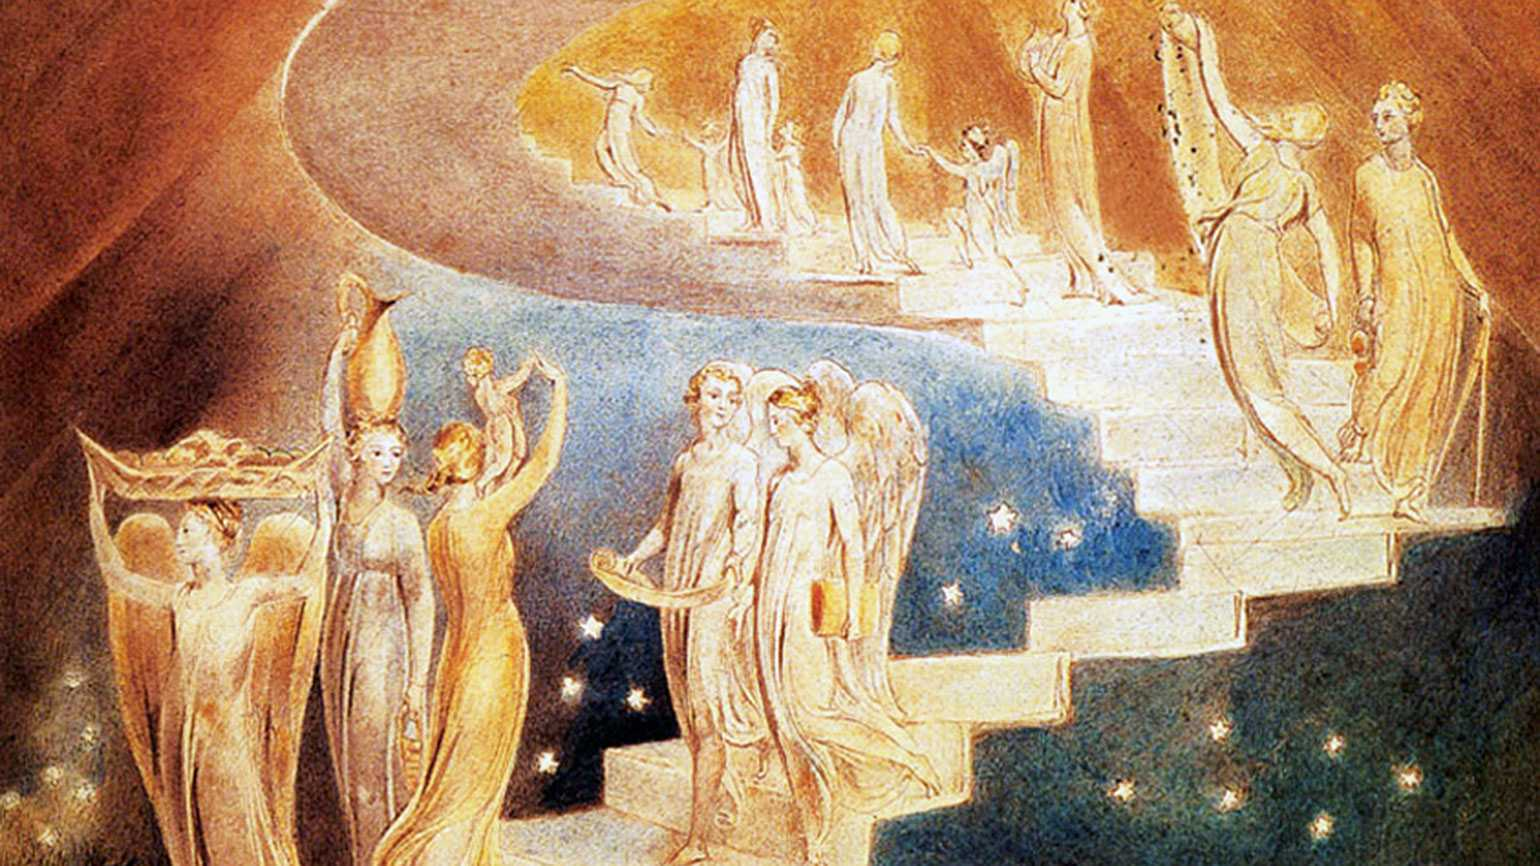 William Blake's Doors of Perception